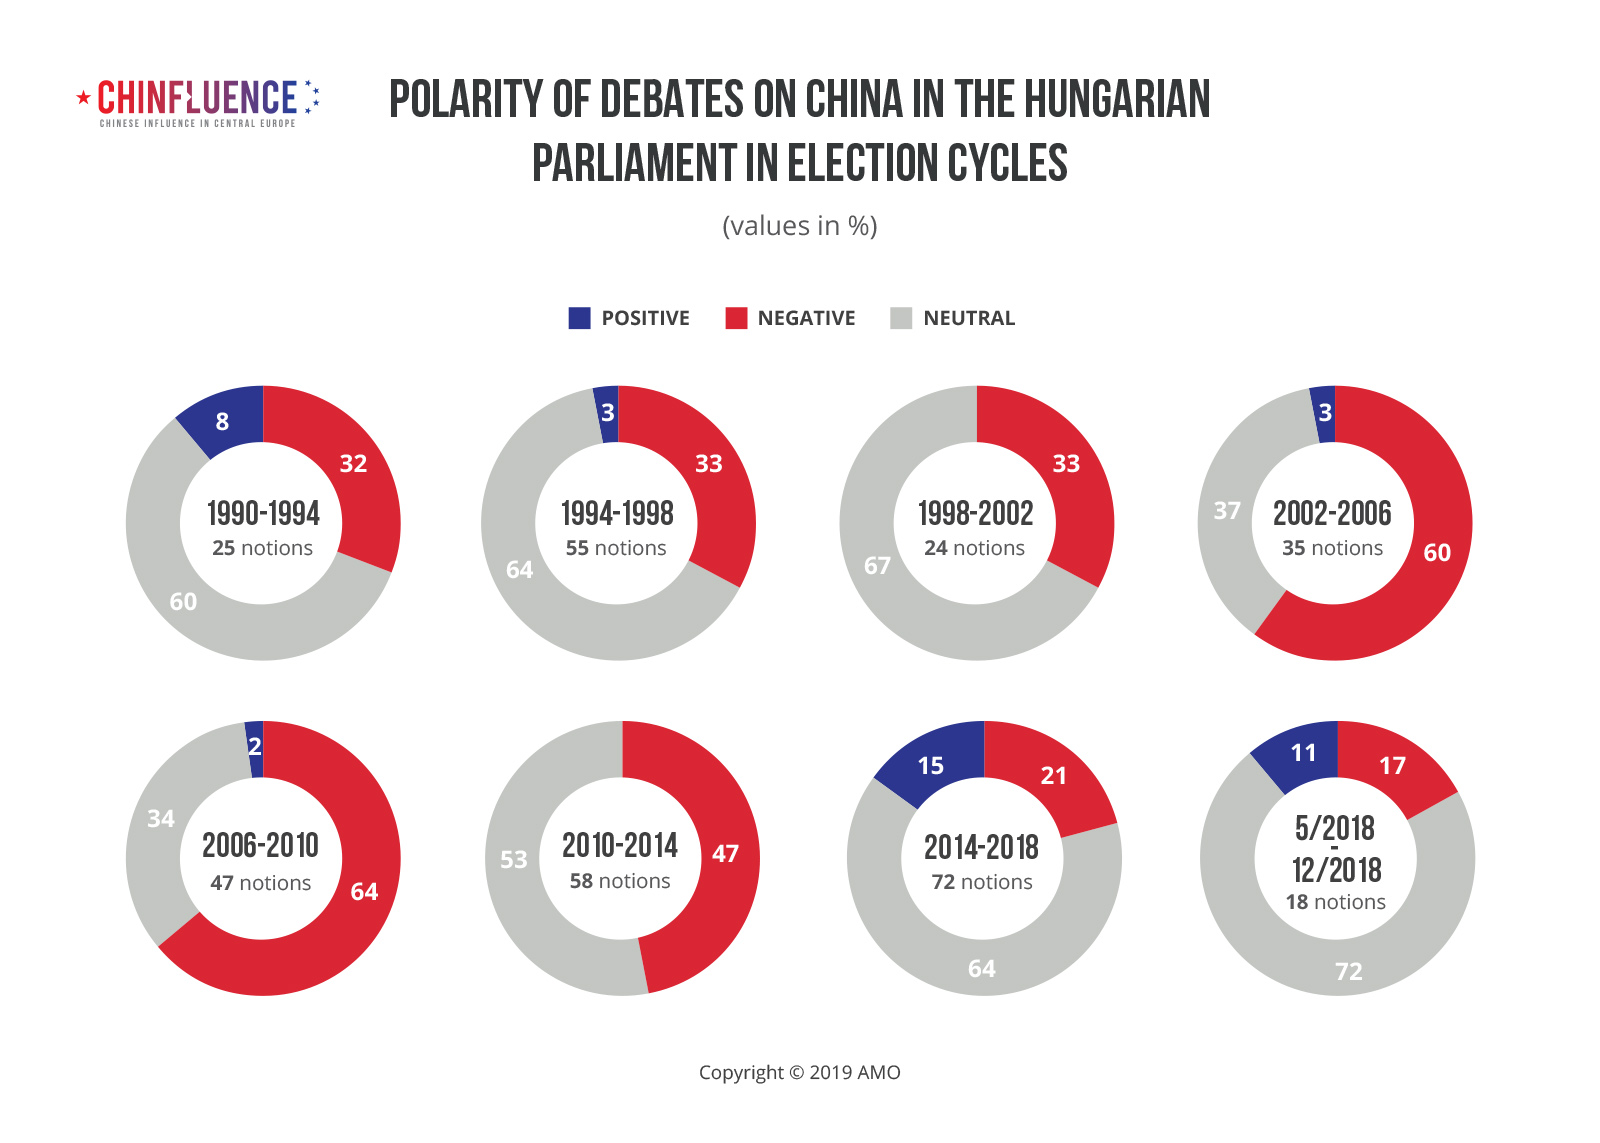 Polarity-of-debates-on-China-at-the-Chamber-of-Deputies-of-the-Parliament-of-Hungary-in-election-cycles_A4_8-grafu